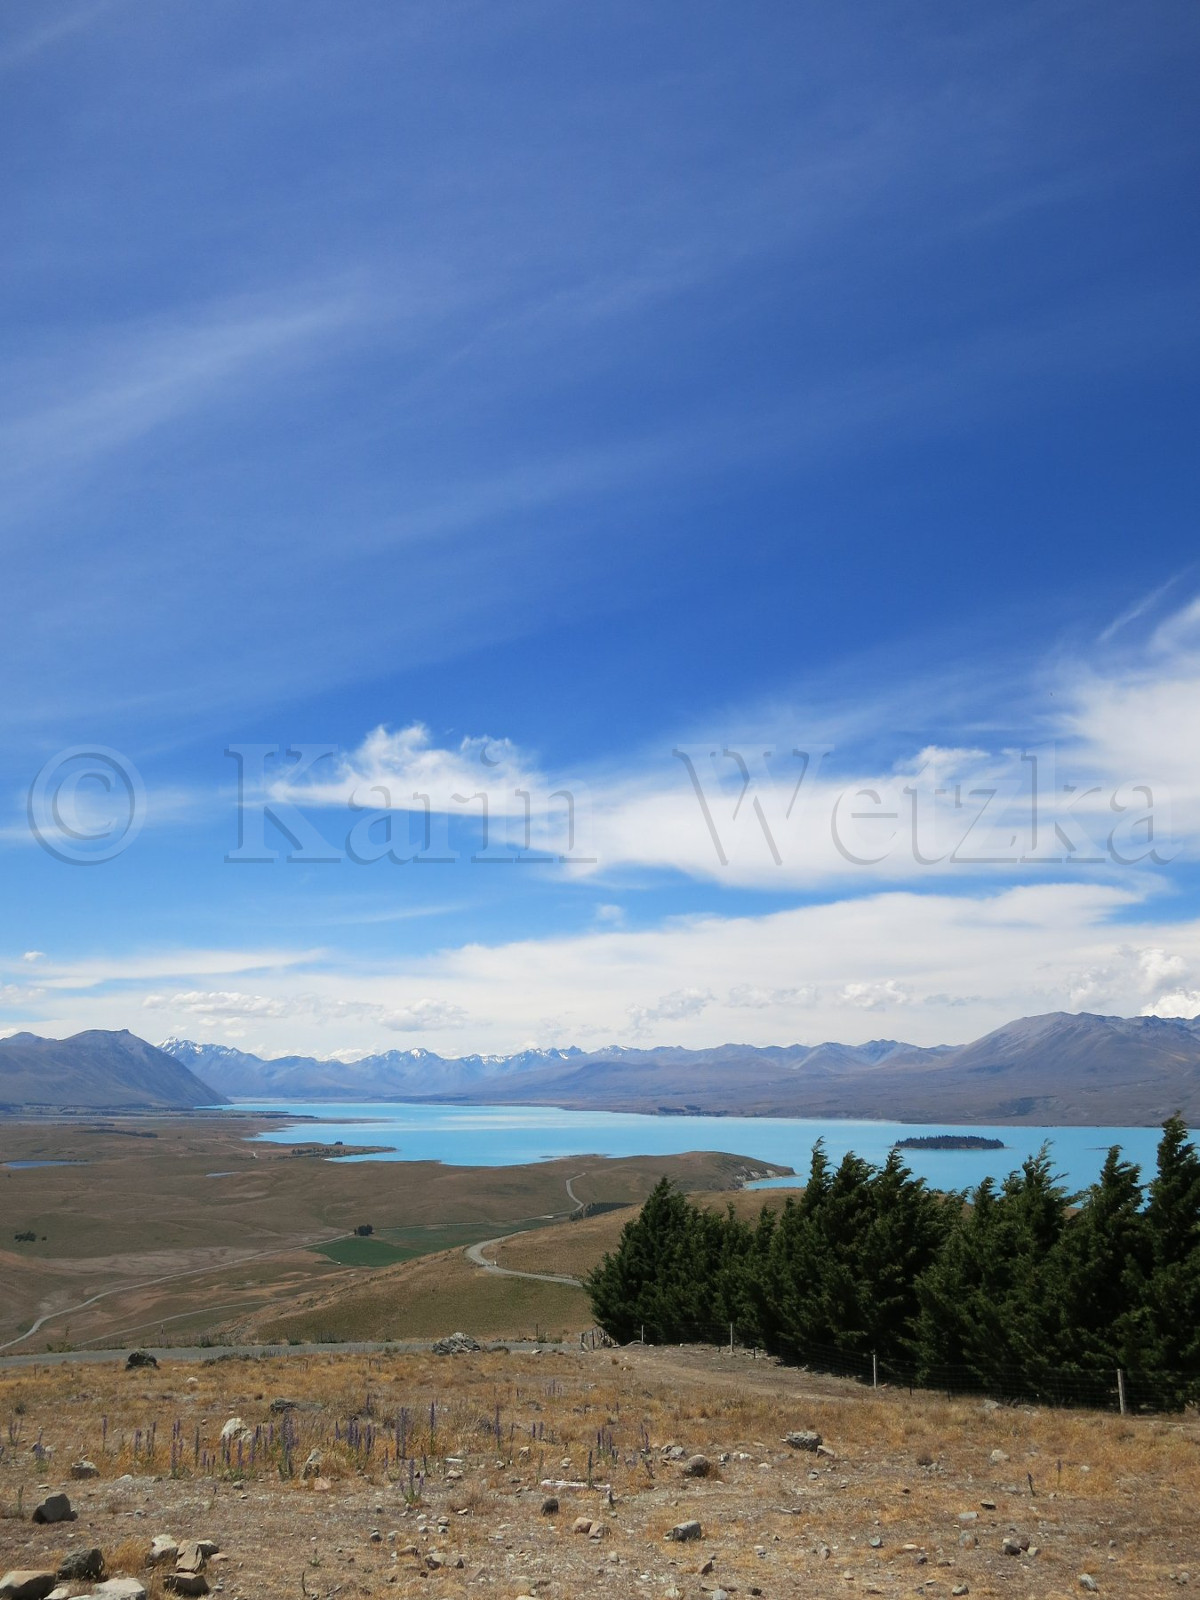 Lake Tekapo, the turquoise blue Lake